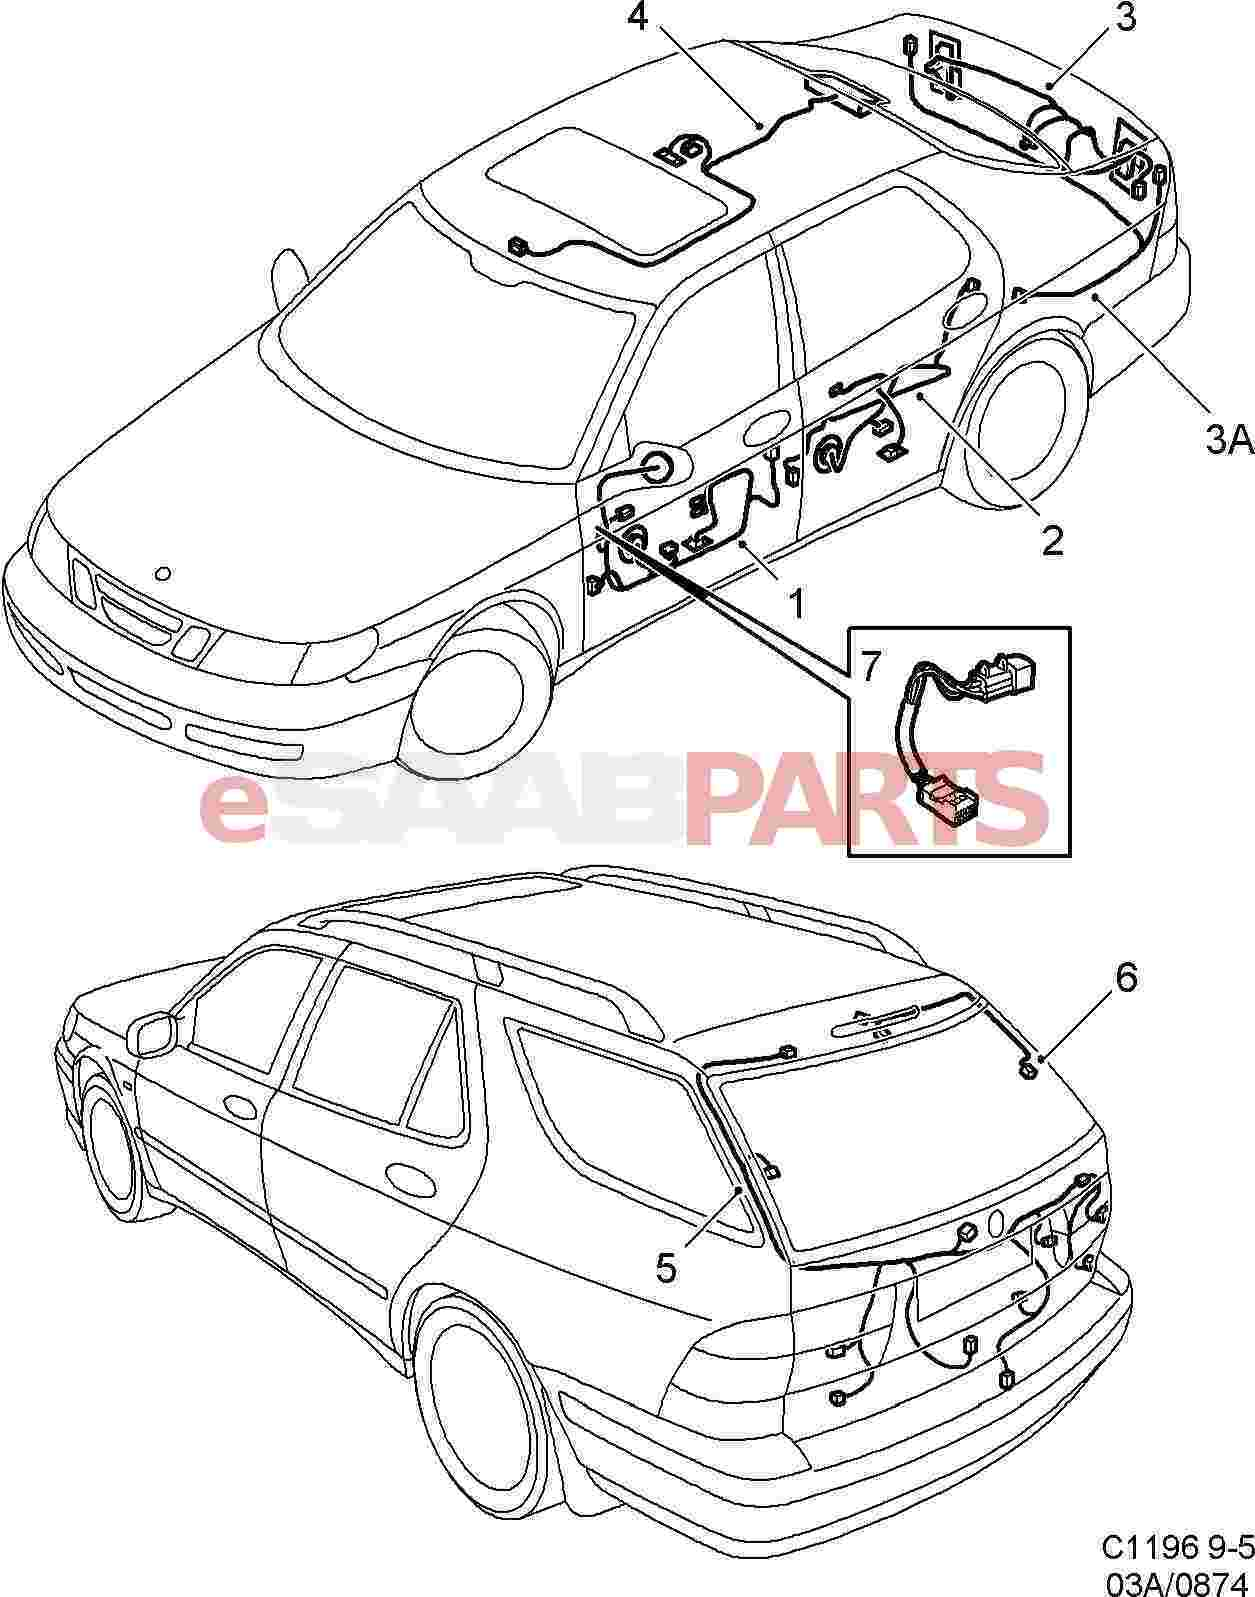 hight resolution of esaabparts com saab 9 5 9600 electrical parts wiring